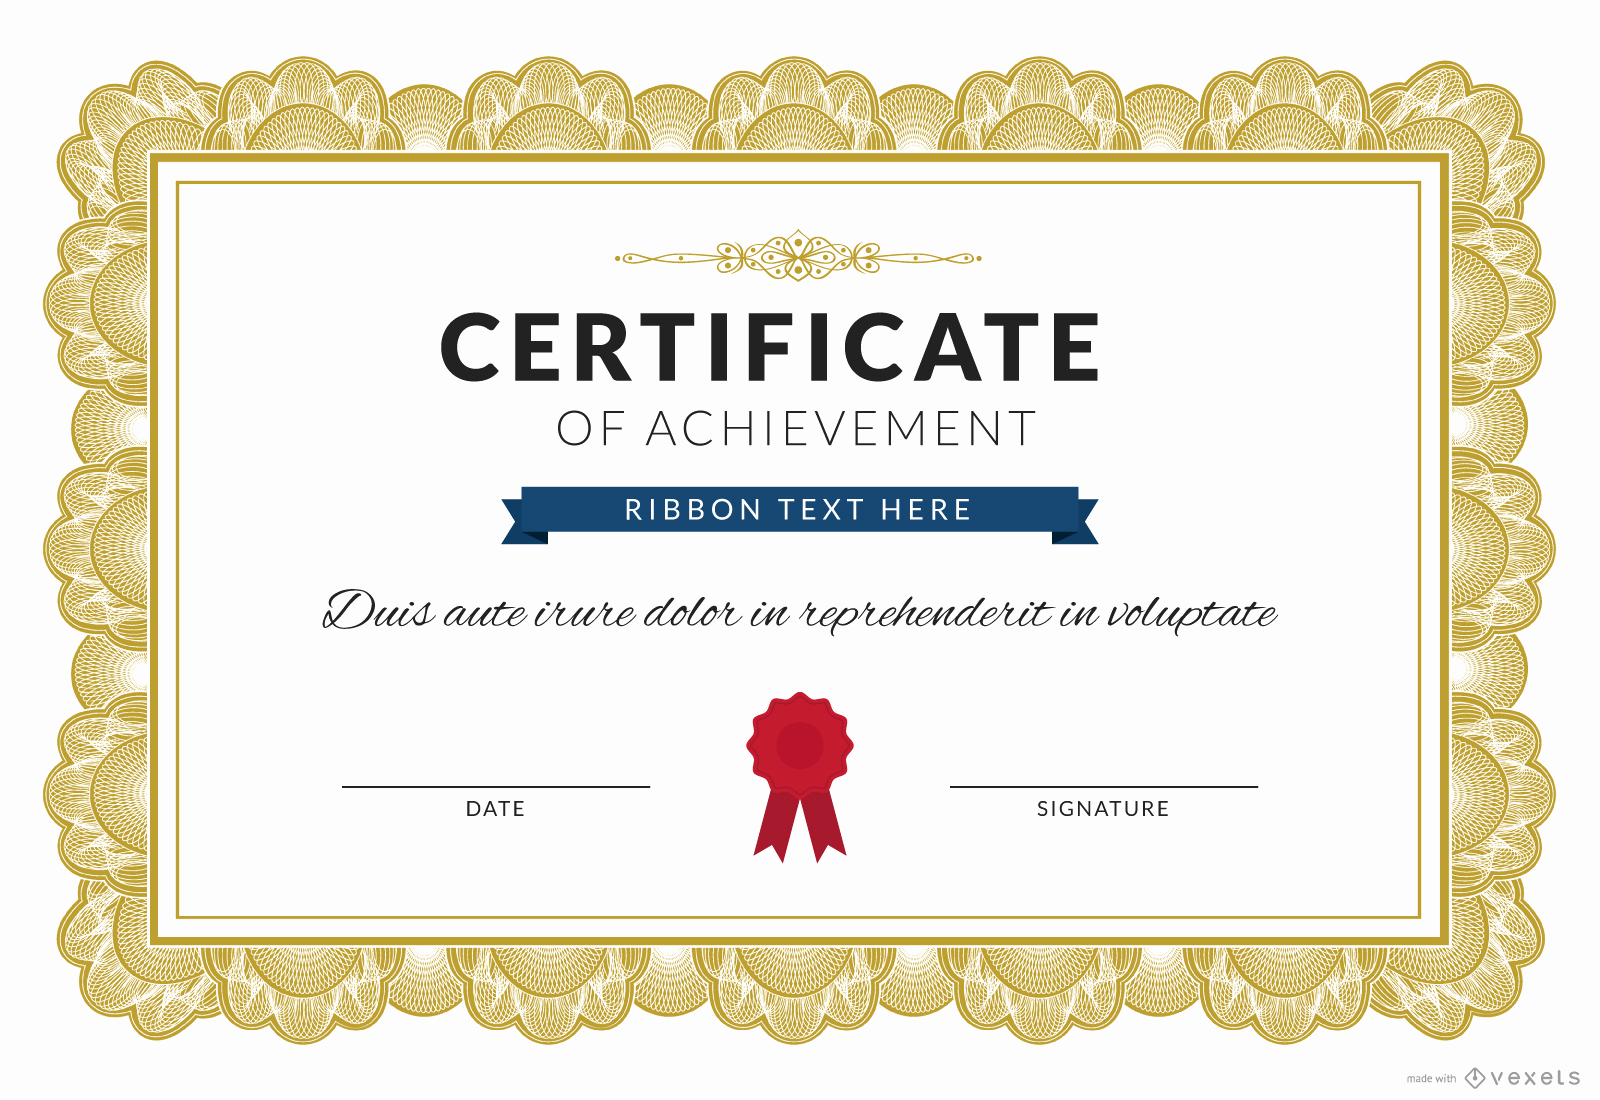 Certificate Of Achievement Template Free Fresh Certificate Of Achievement Maker Editable Design